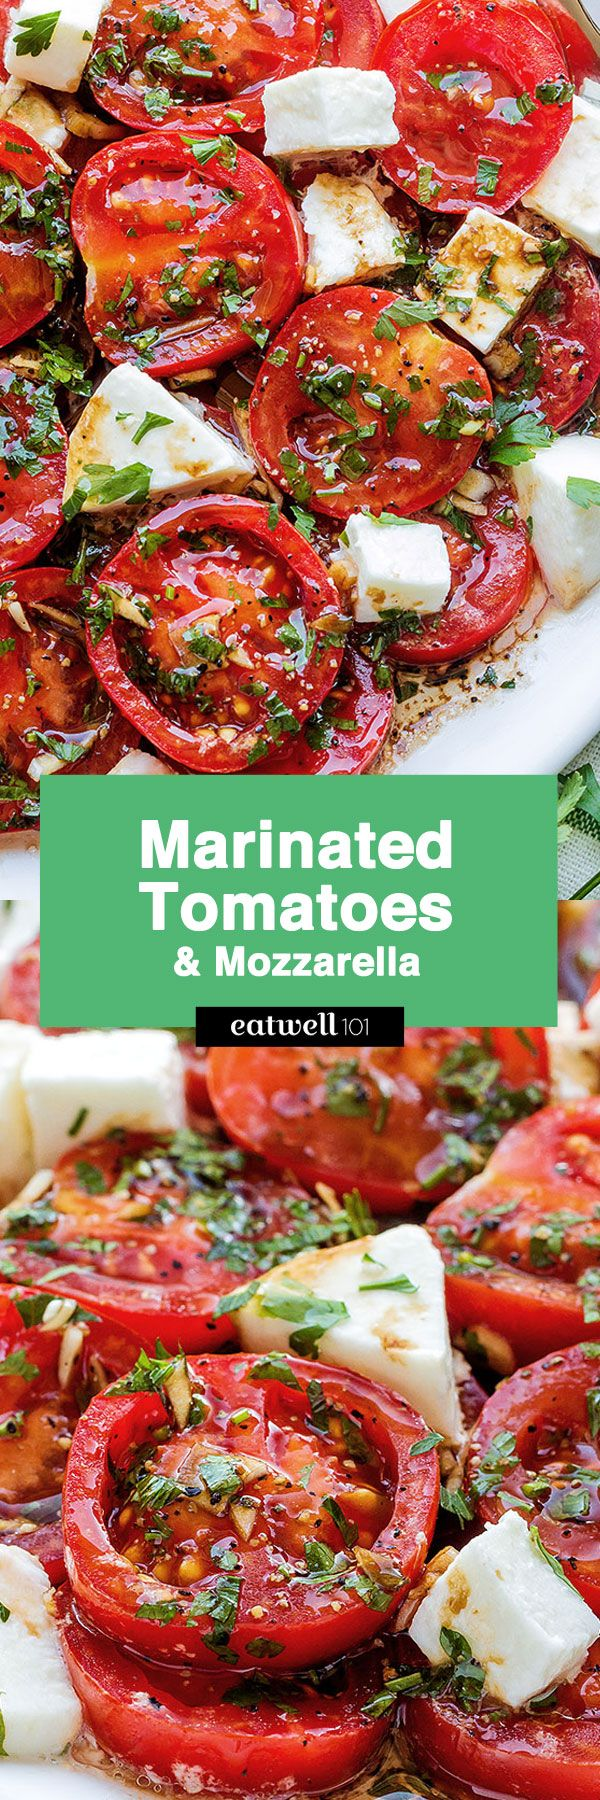 Perfect Marinated Tomatoes with Mozzarella   Vegetable recipes ...